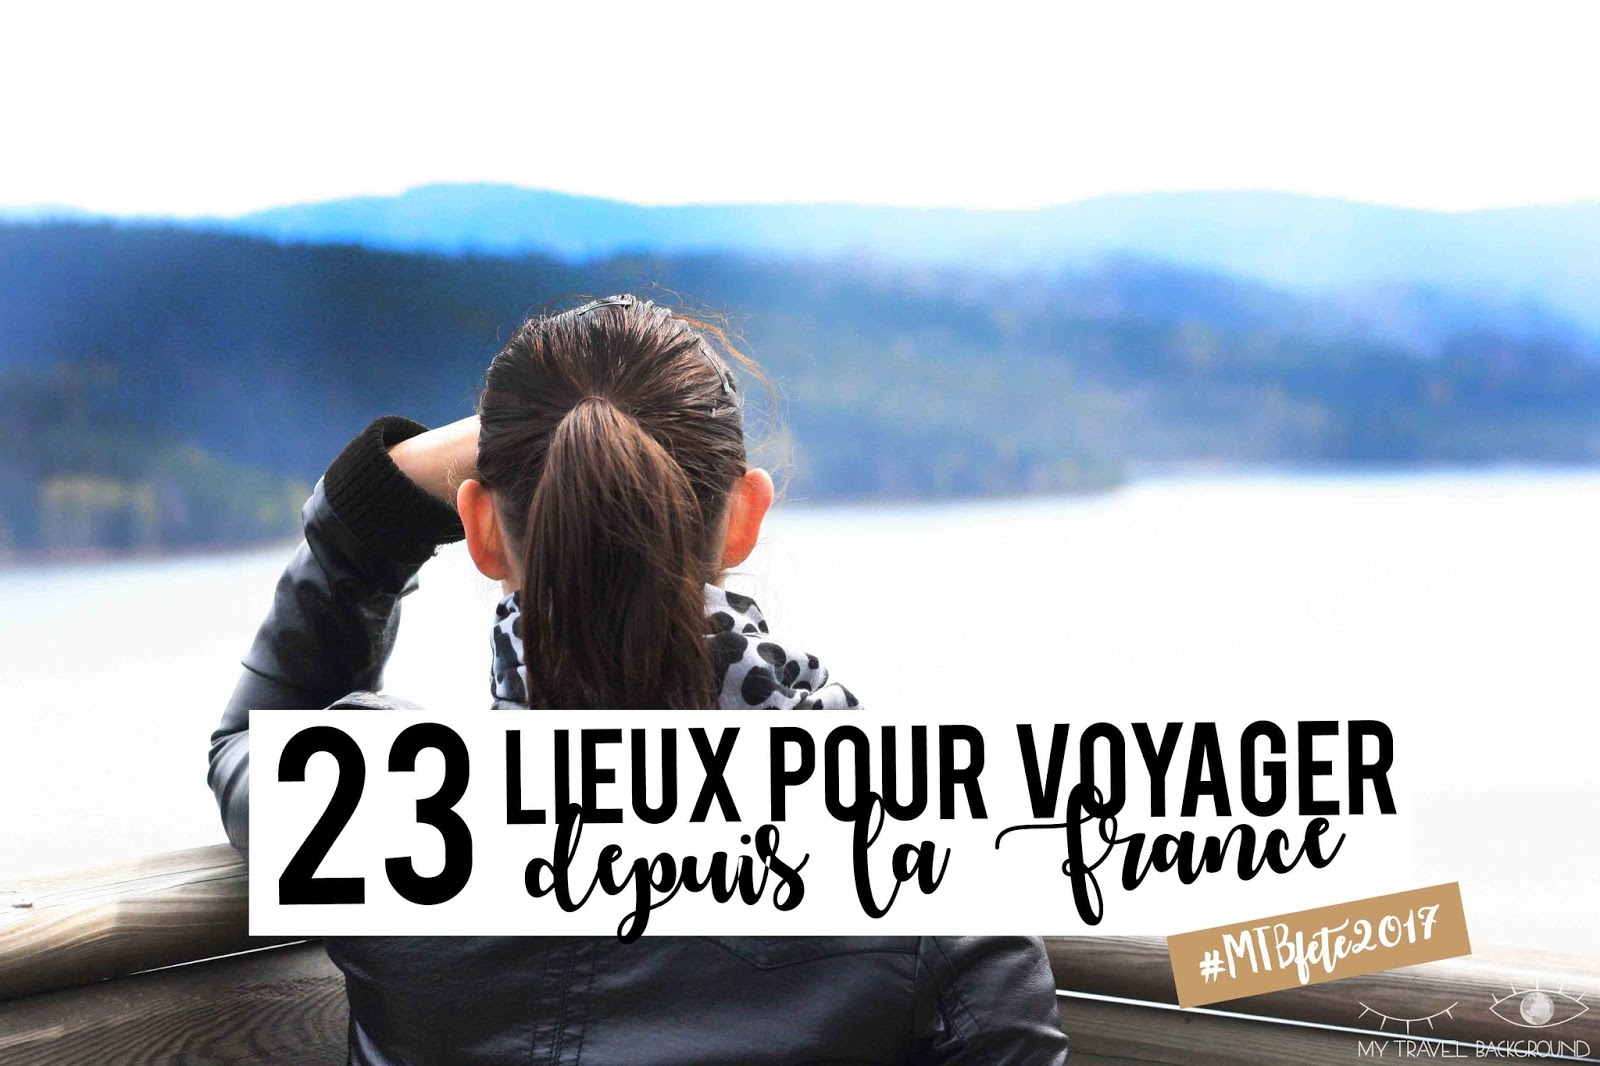 My Travel Background : 23 lieux pour voyager depuis la France